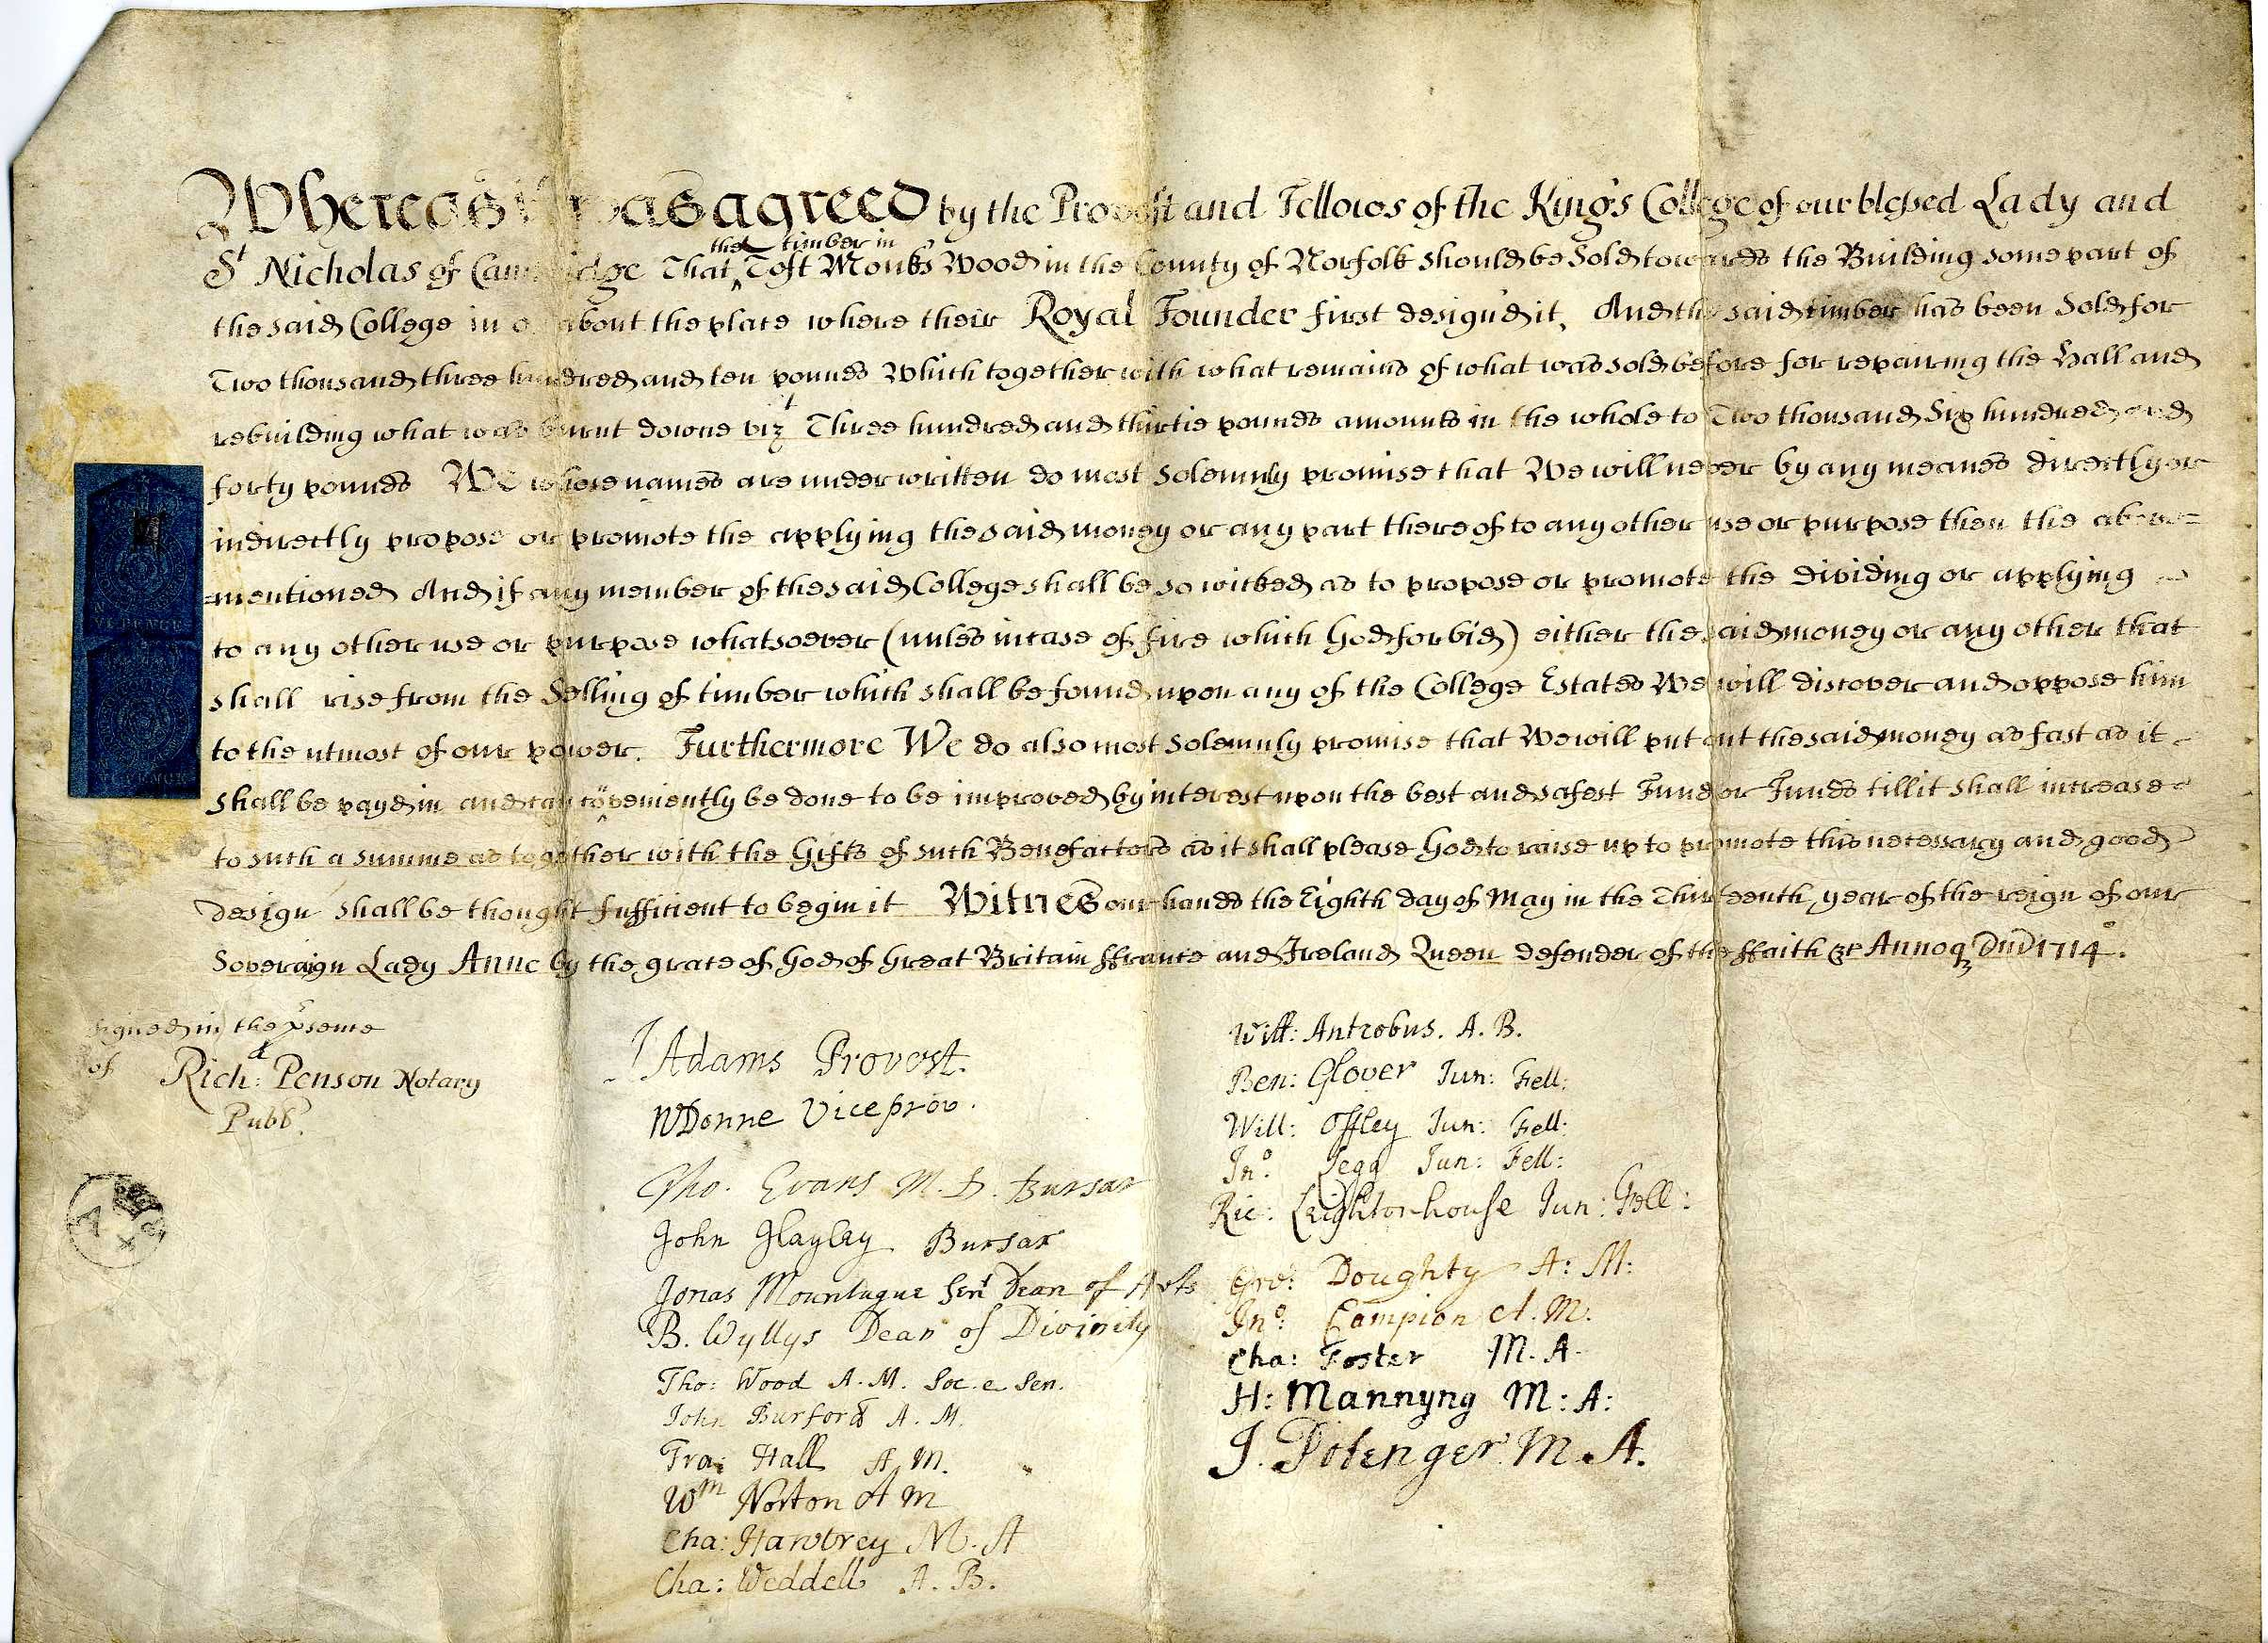 Agreement by King's College to appropriate money from the sale of timber in Toft Monks for repairing buildings on the College site. Signed by the Provost, Bursars and Fellows, 8 May 1714. [TOM/52]